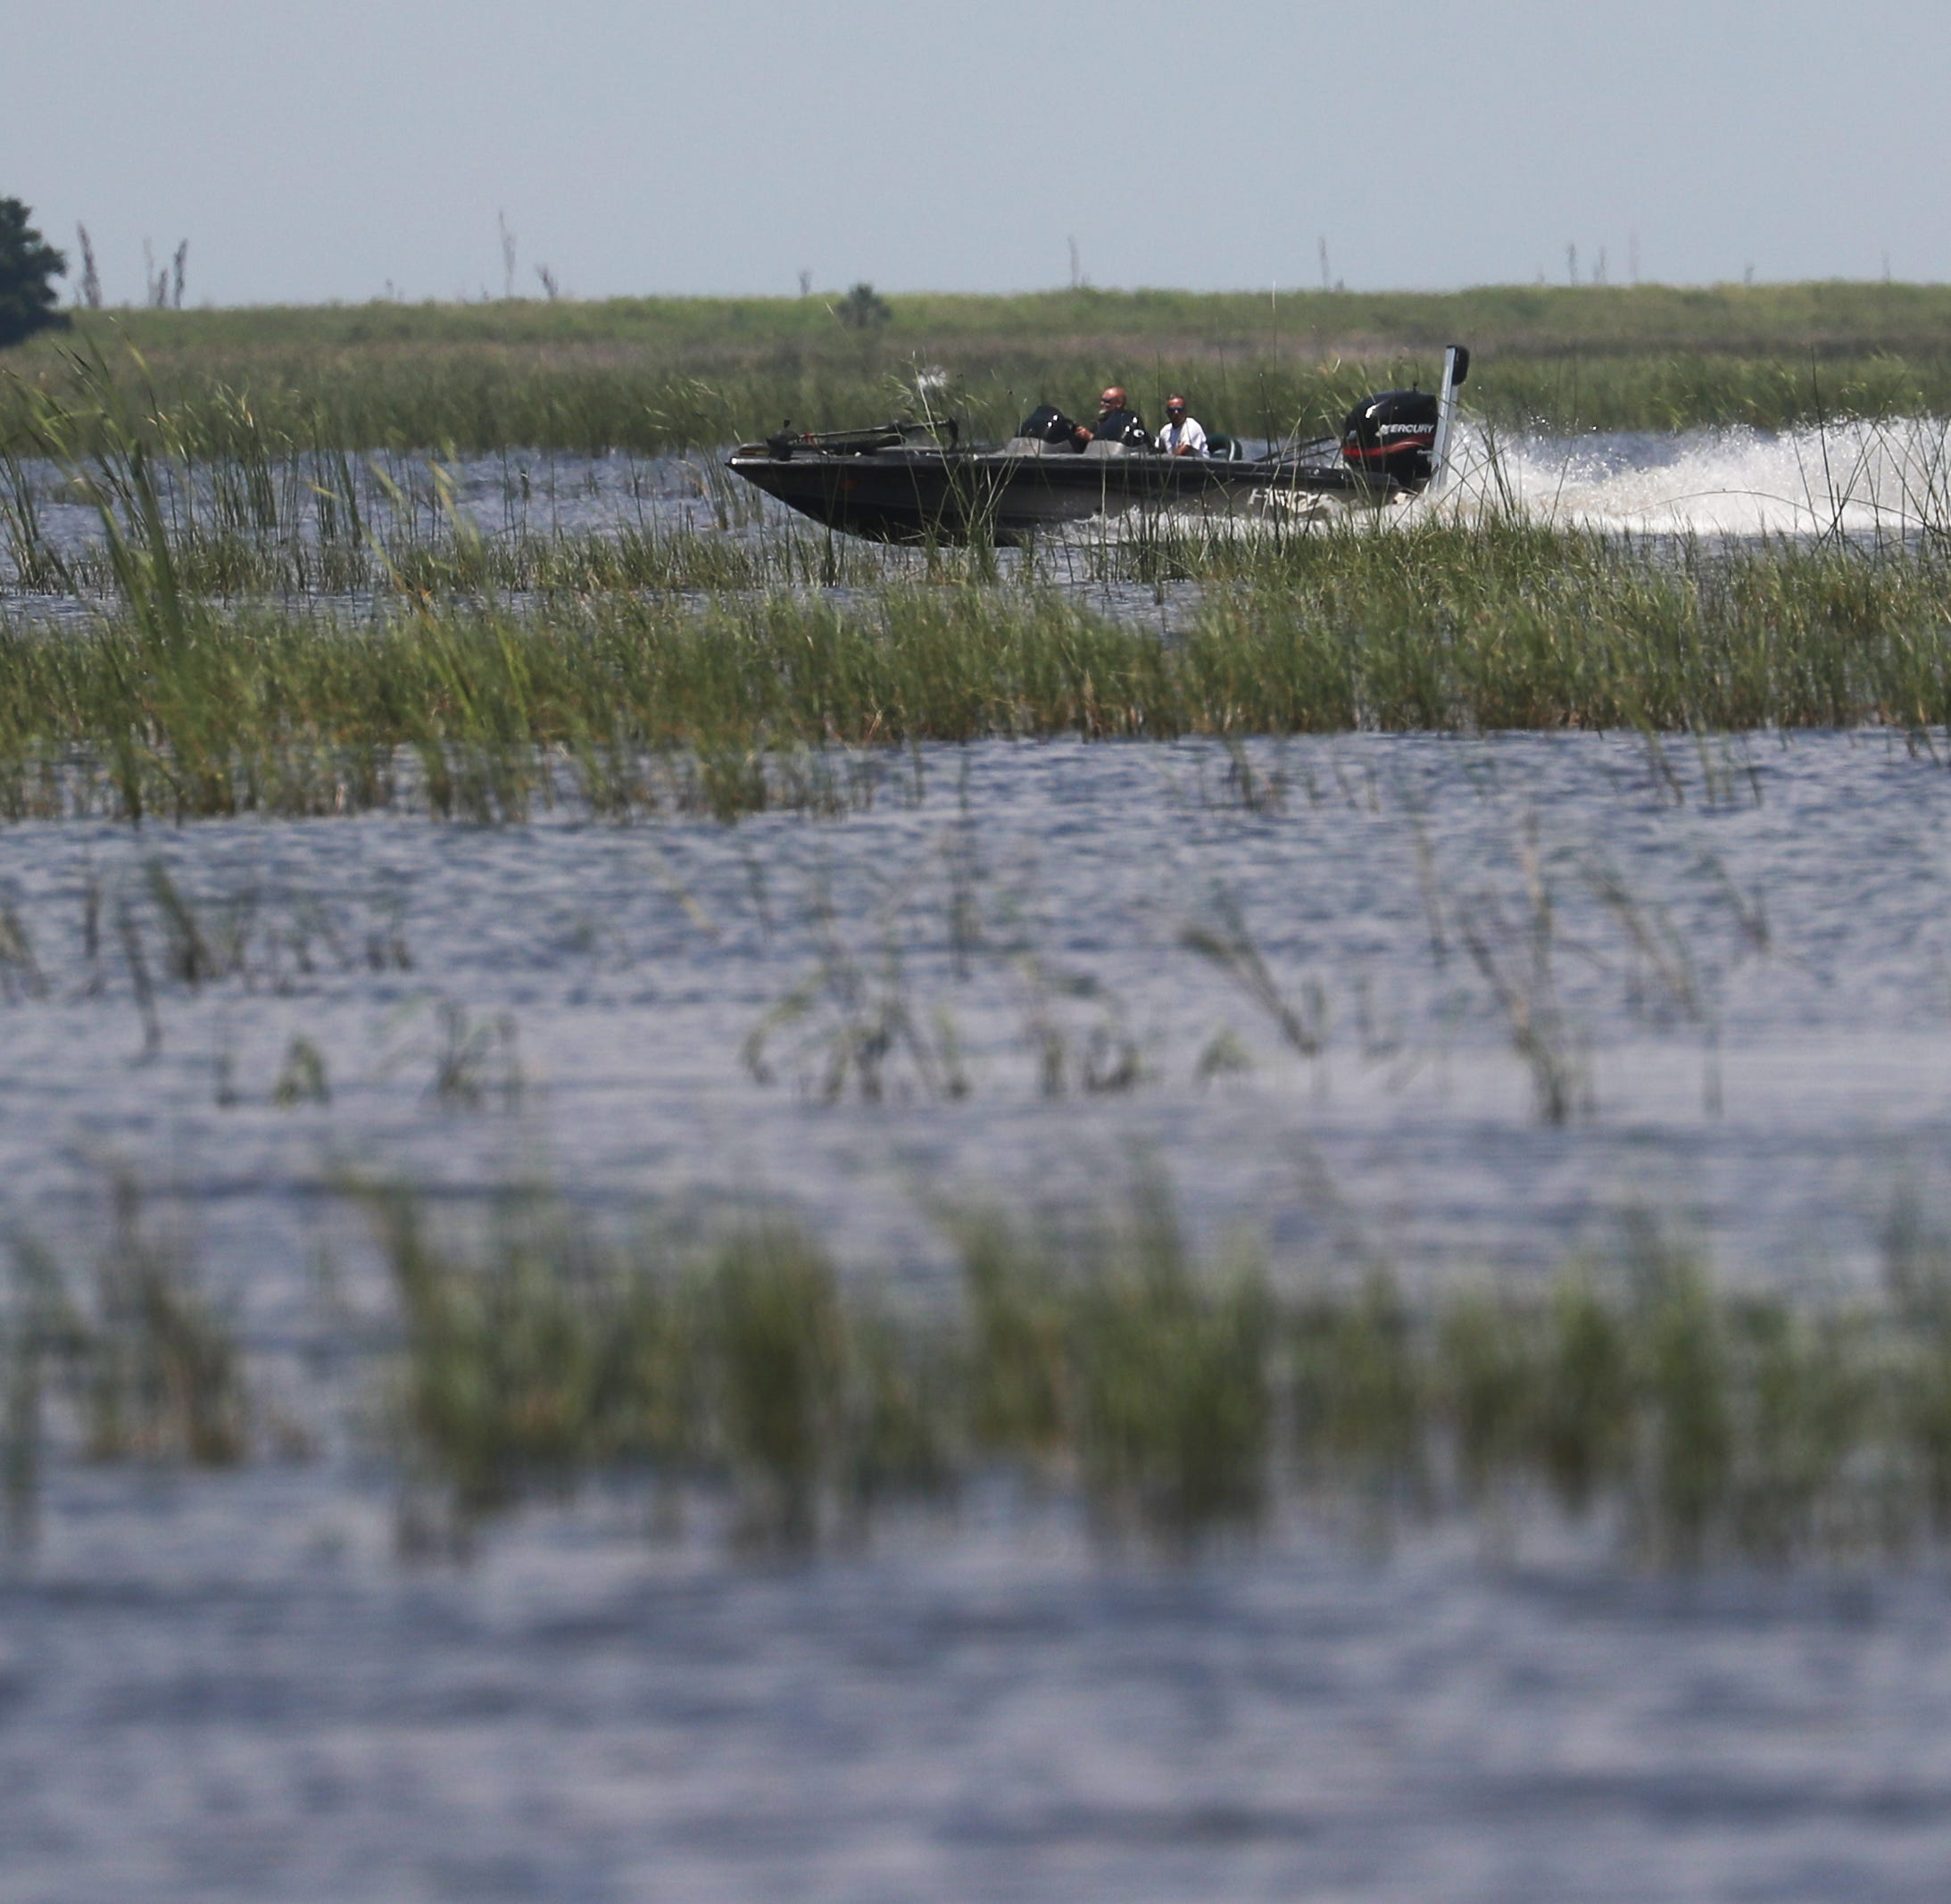 Federal water managers say another blue-green algae bloom on Okeechobee likely